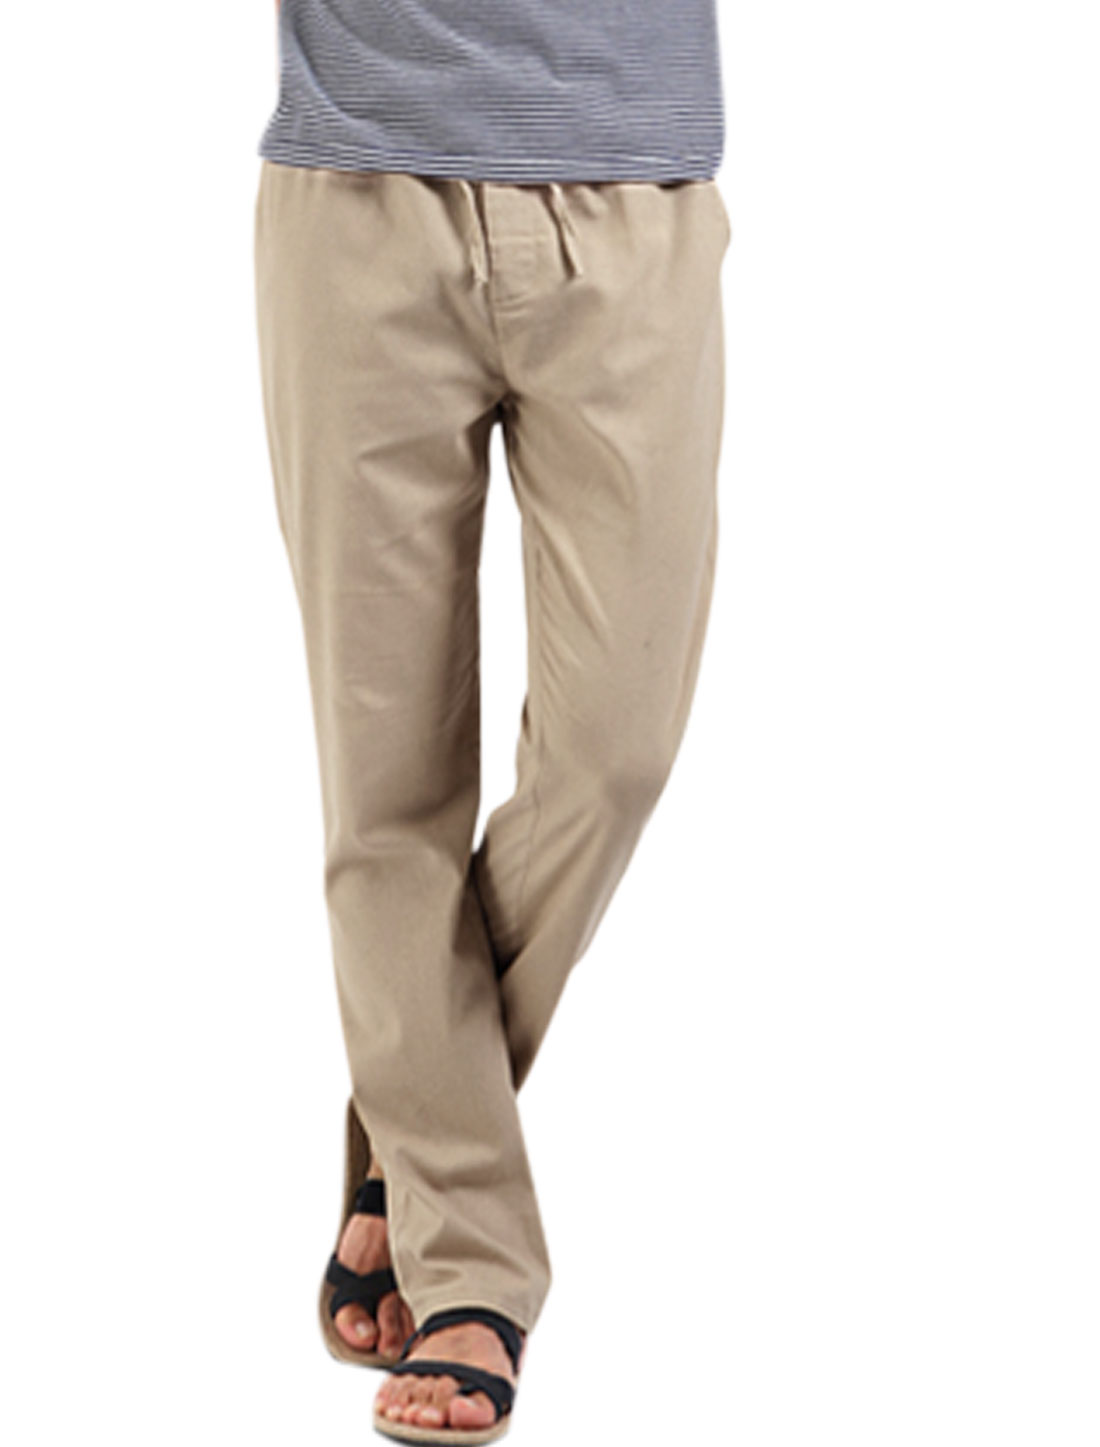 Men Elastic Drawcord Waist Zip Fly Casual Pants Khaki W28